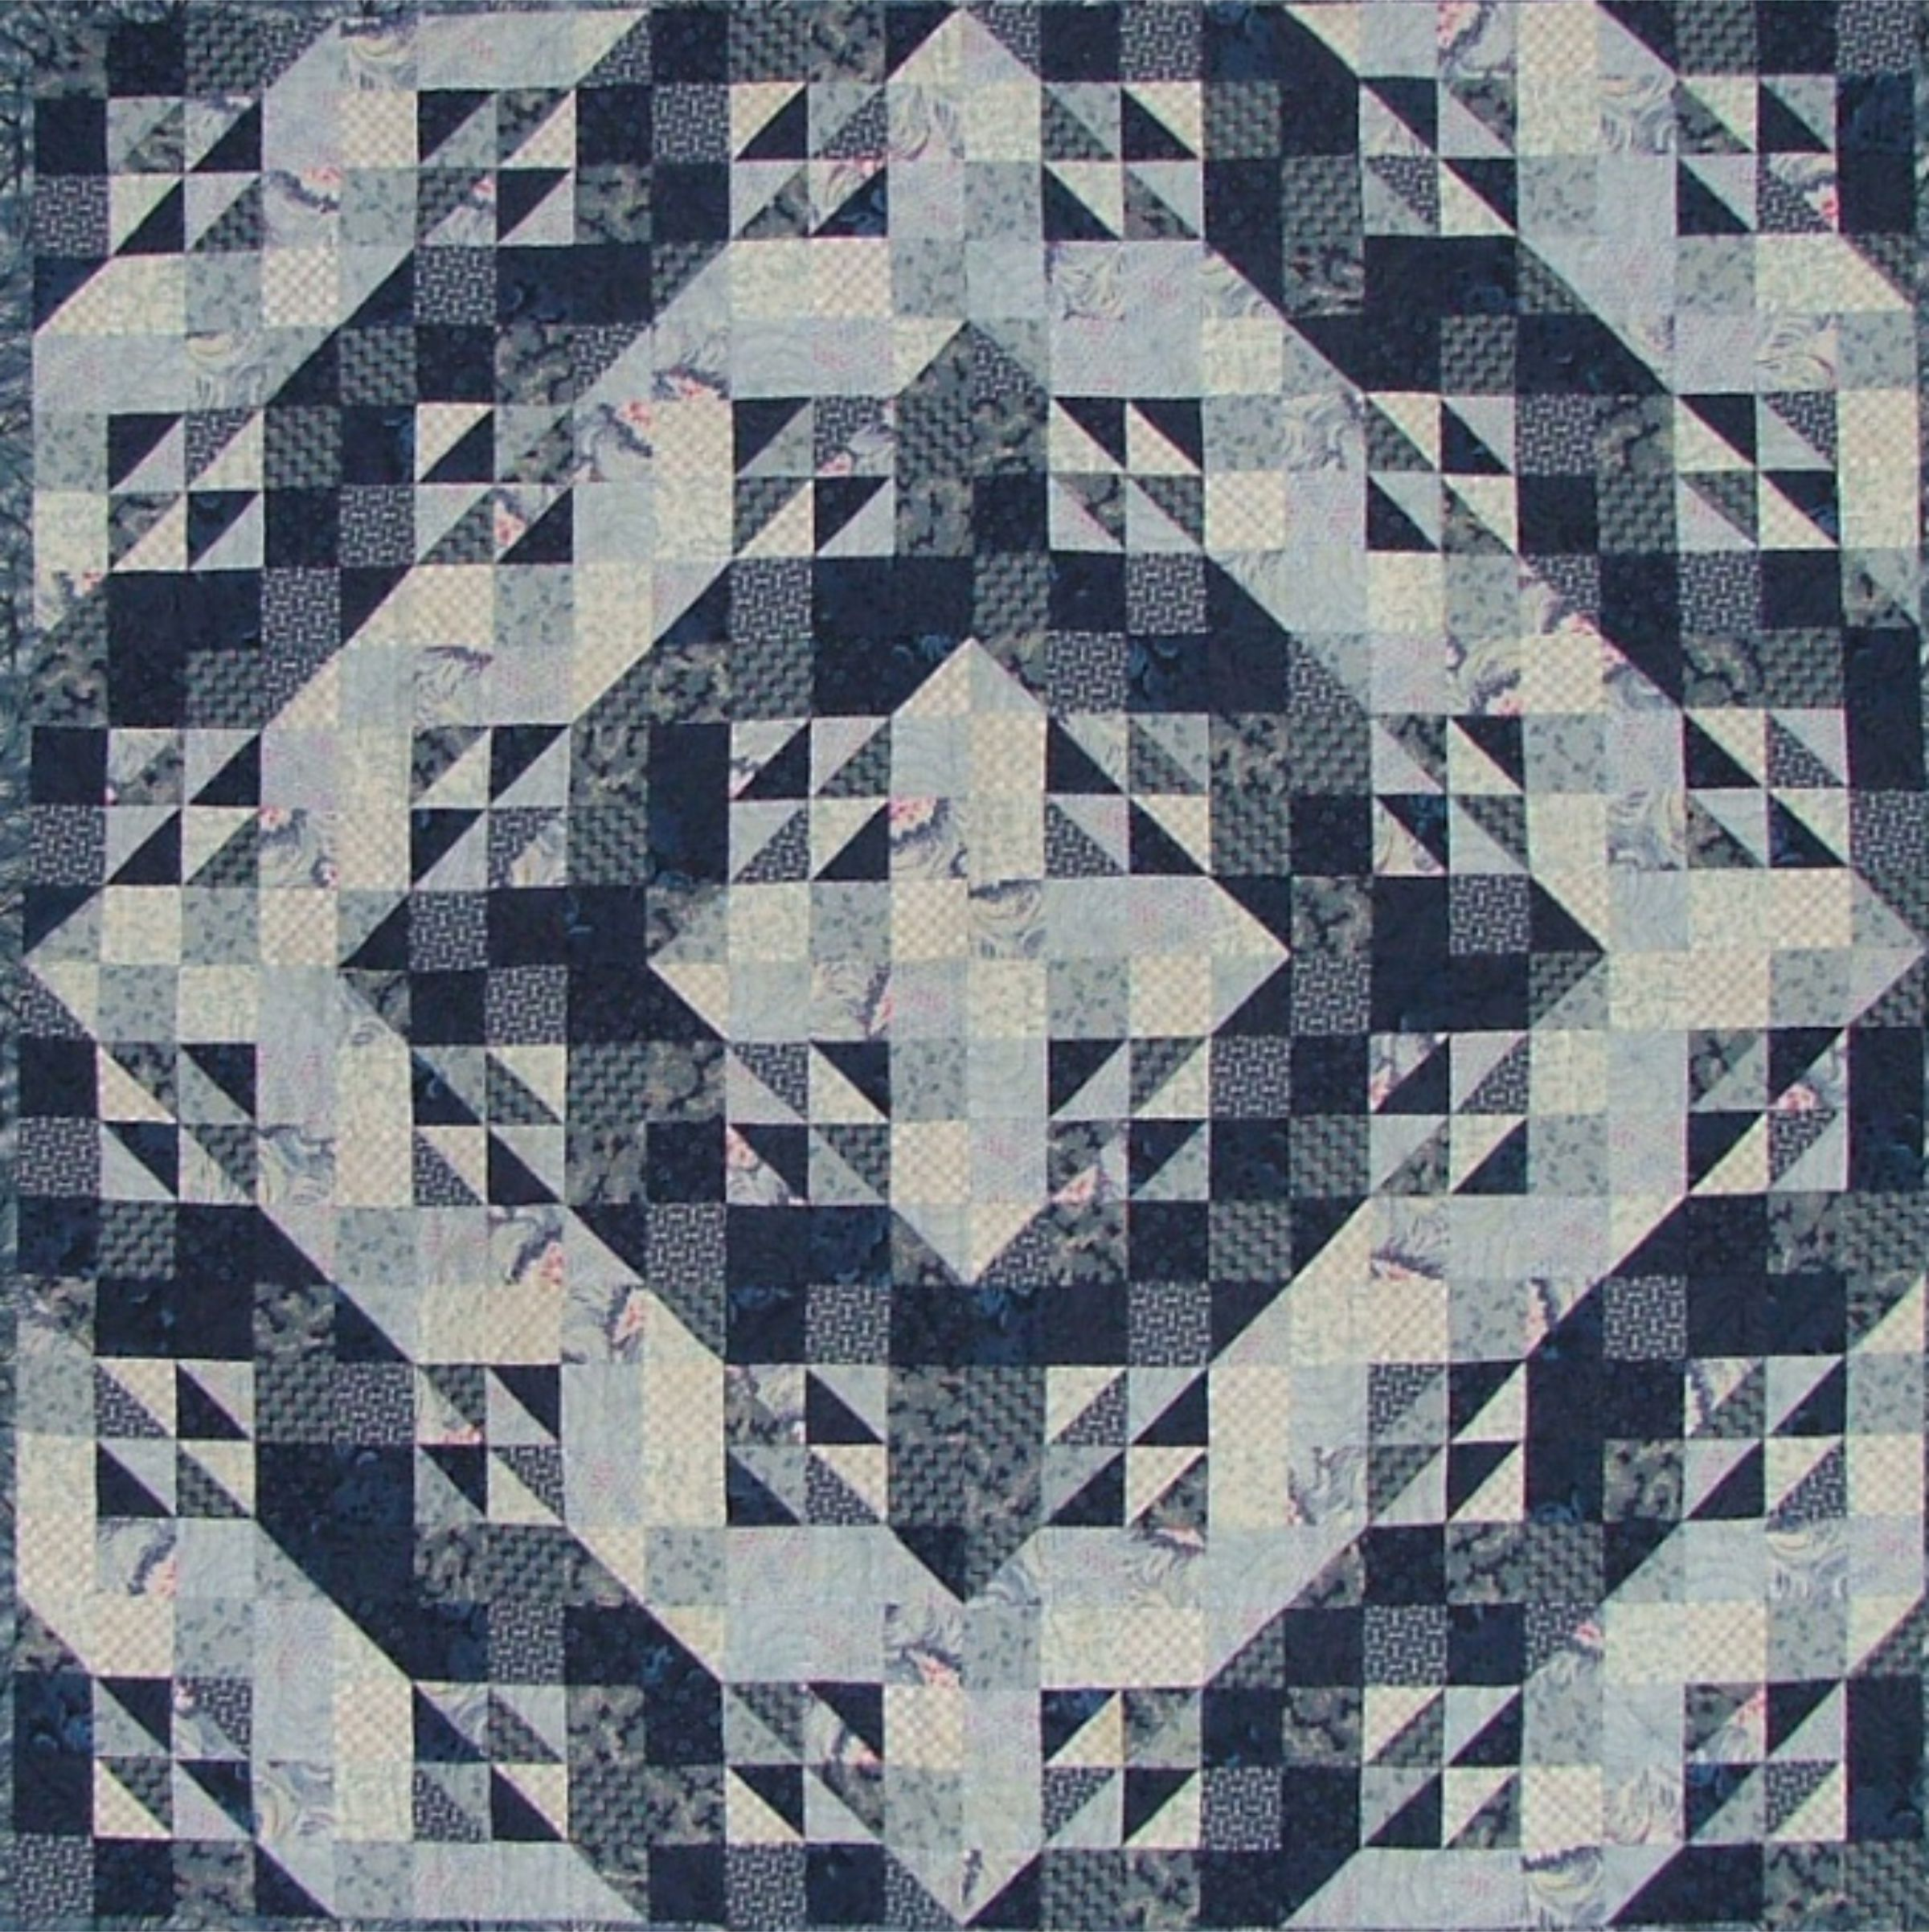 Allover Machine Quilting Designs – Kathy K. Wylie Quilts